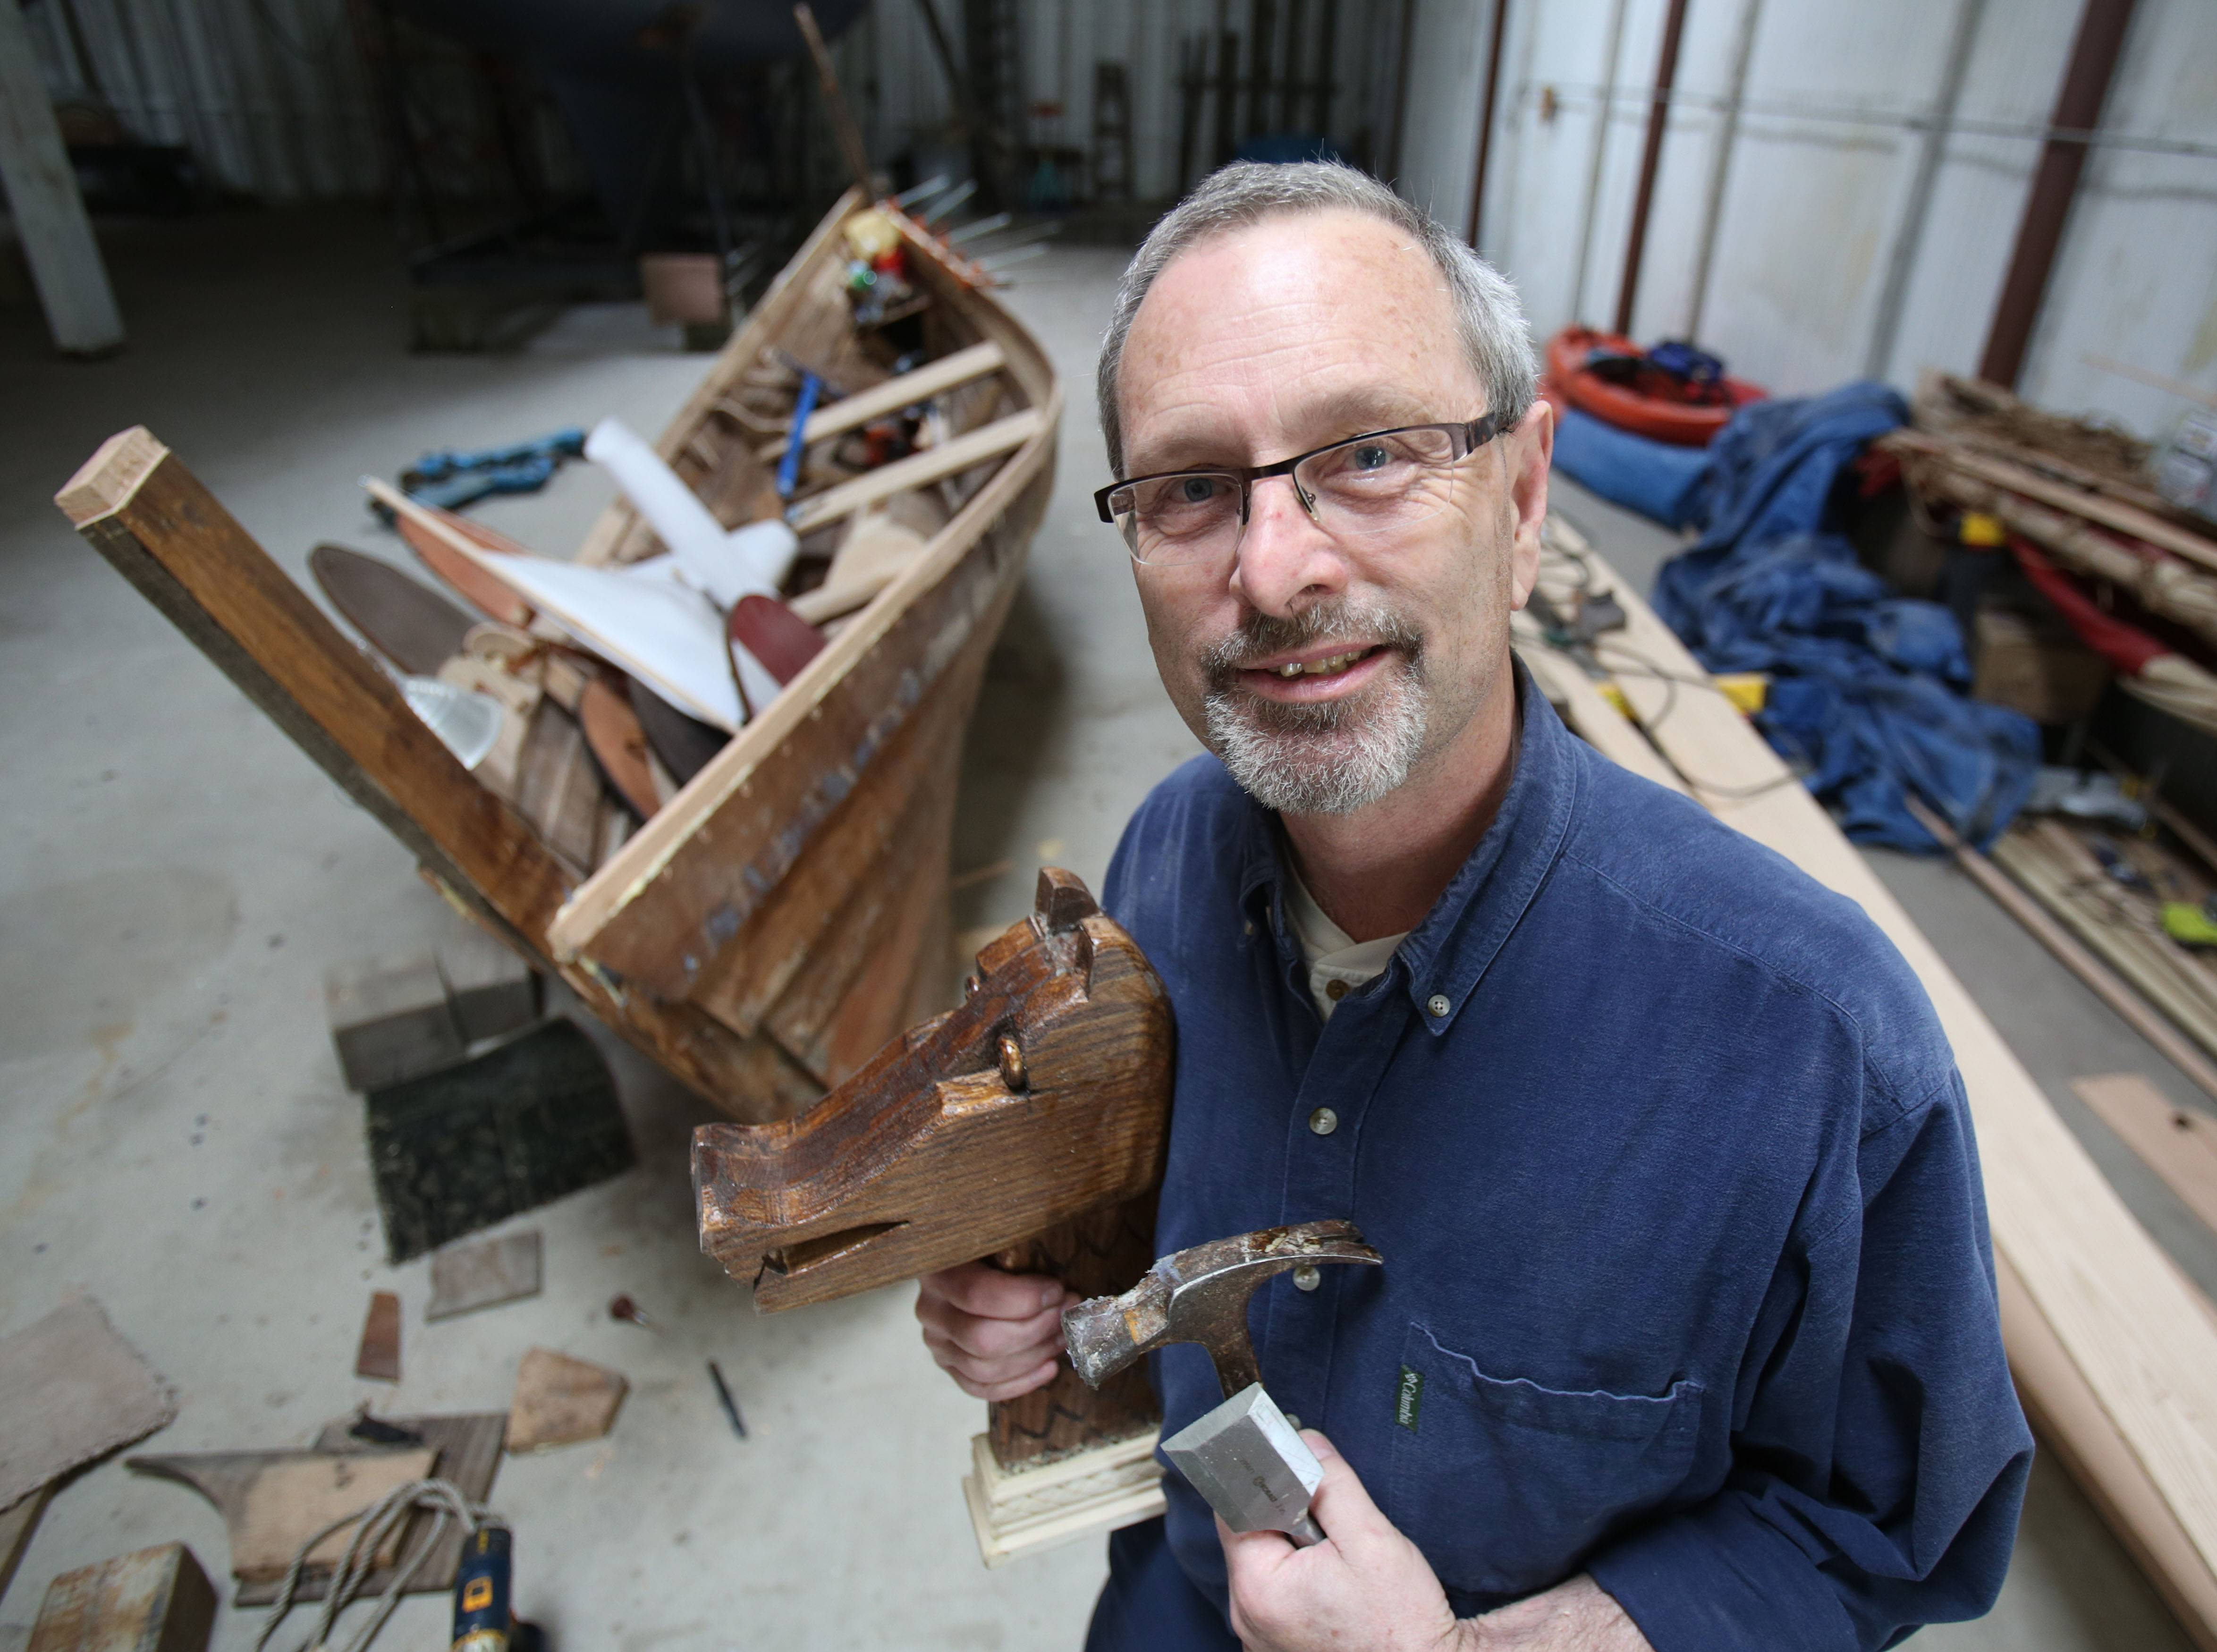 How to fill those retirement years? Libertyville man builds Viking warship